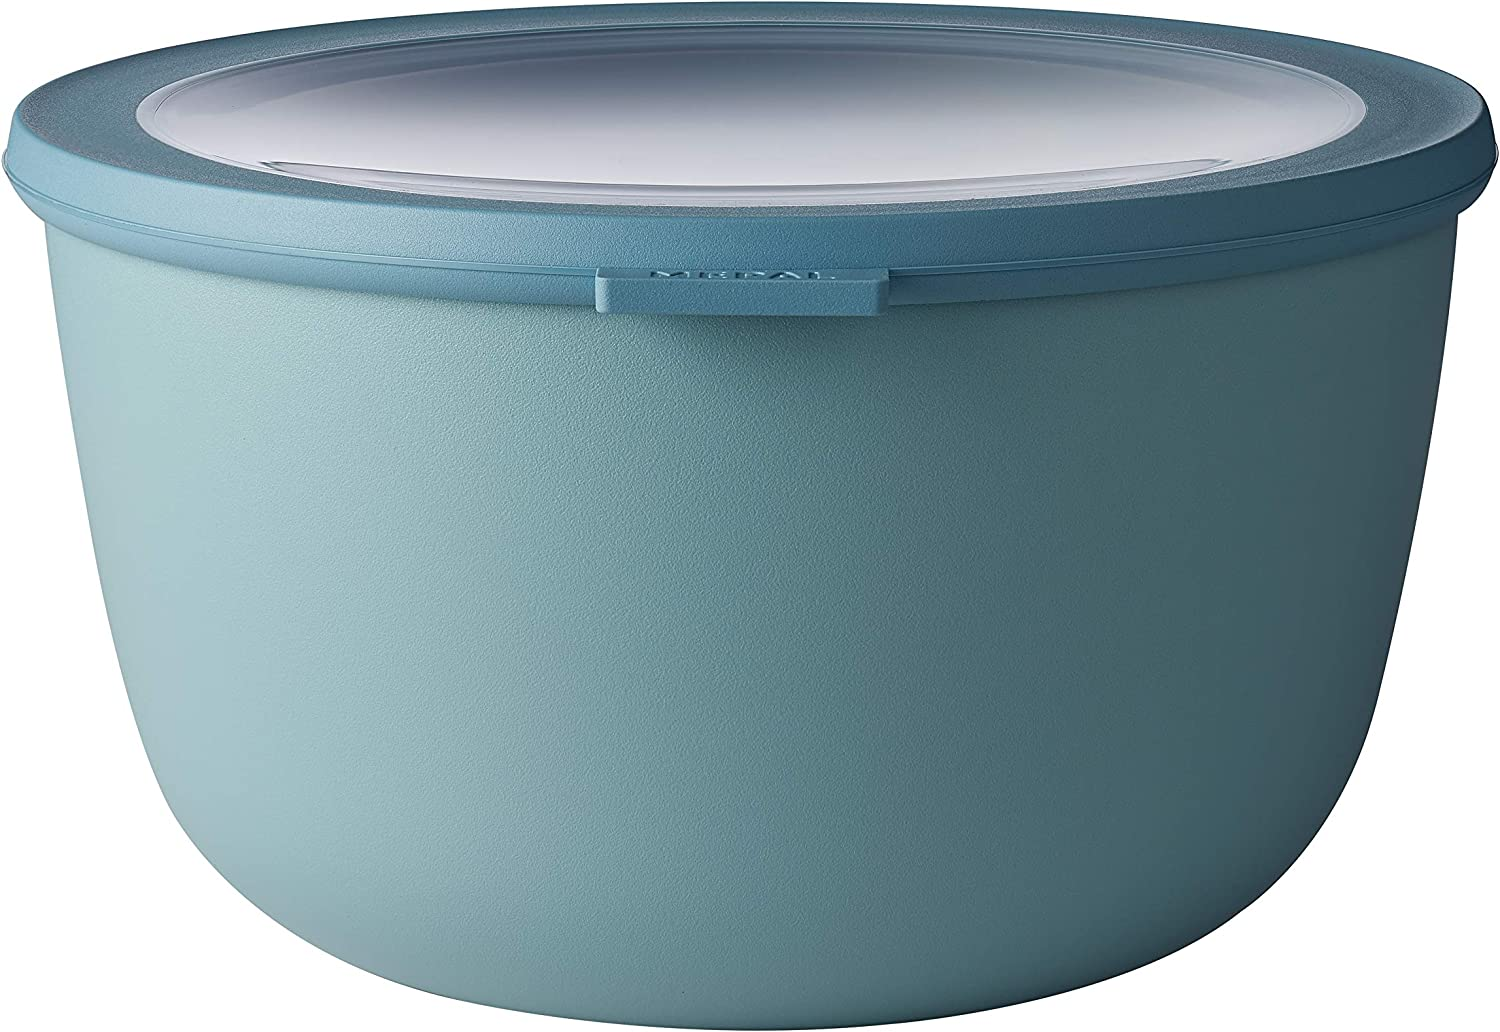 Rosti Mepal Cirqula Multi Food Storage and Serving Bowl with Lid, 3L/3.1Q, Nordic-Green